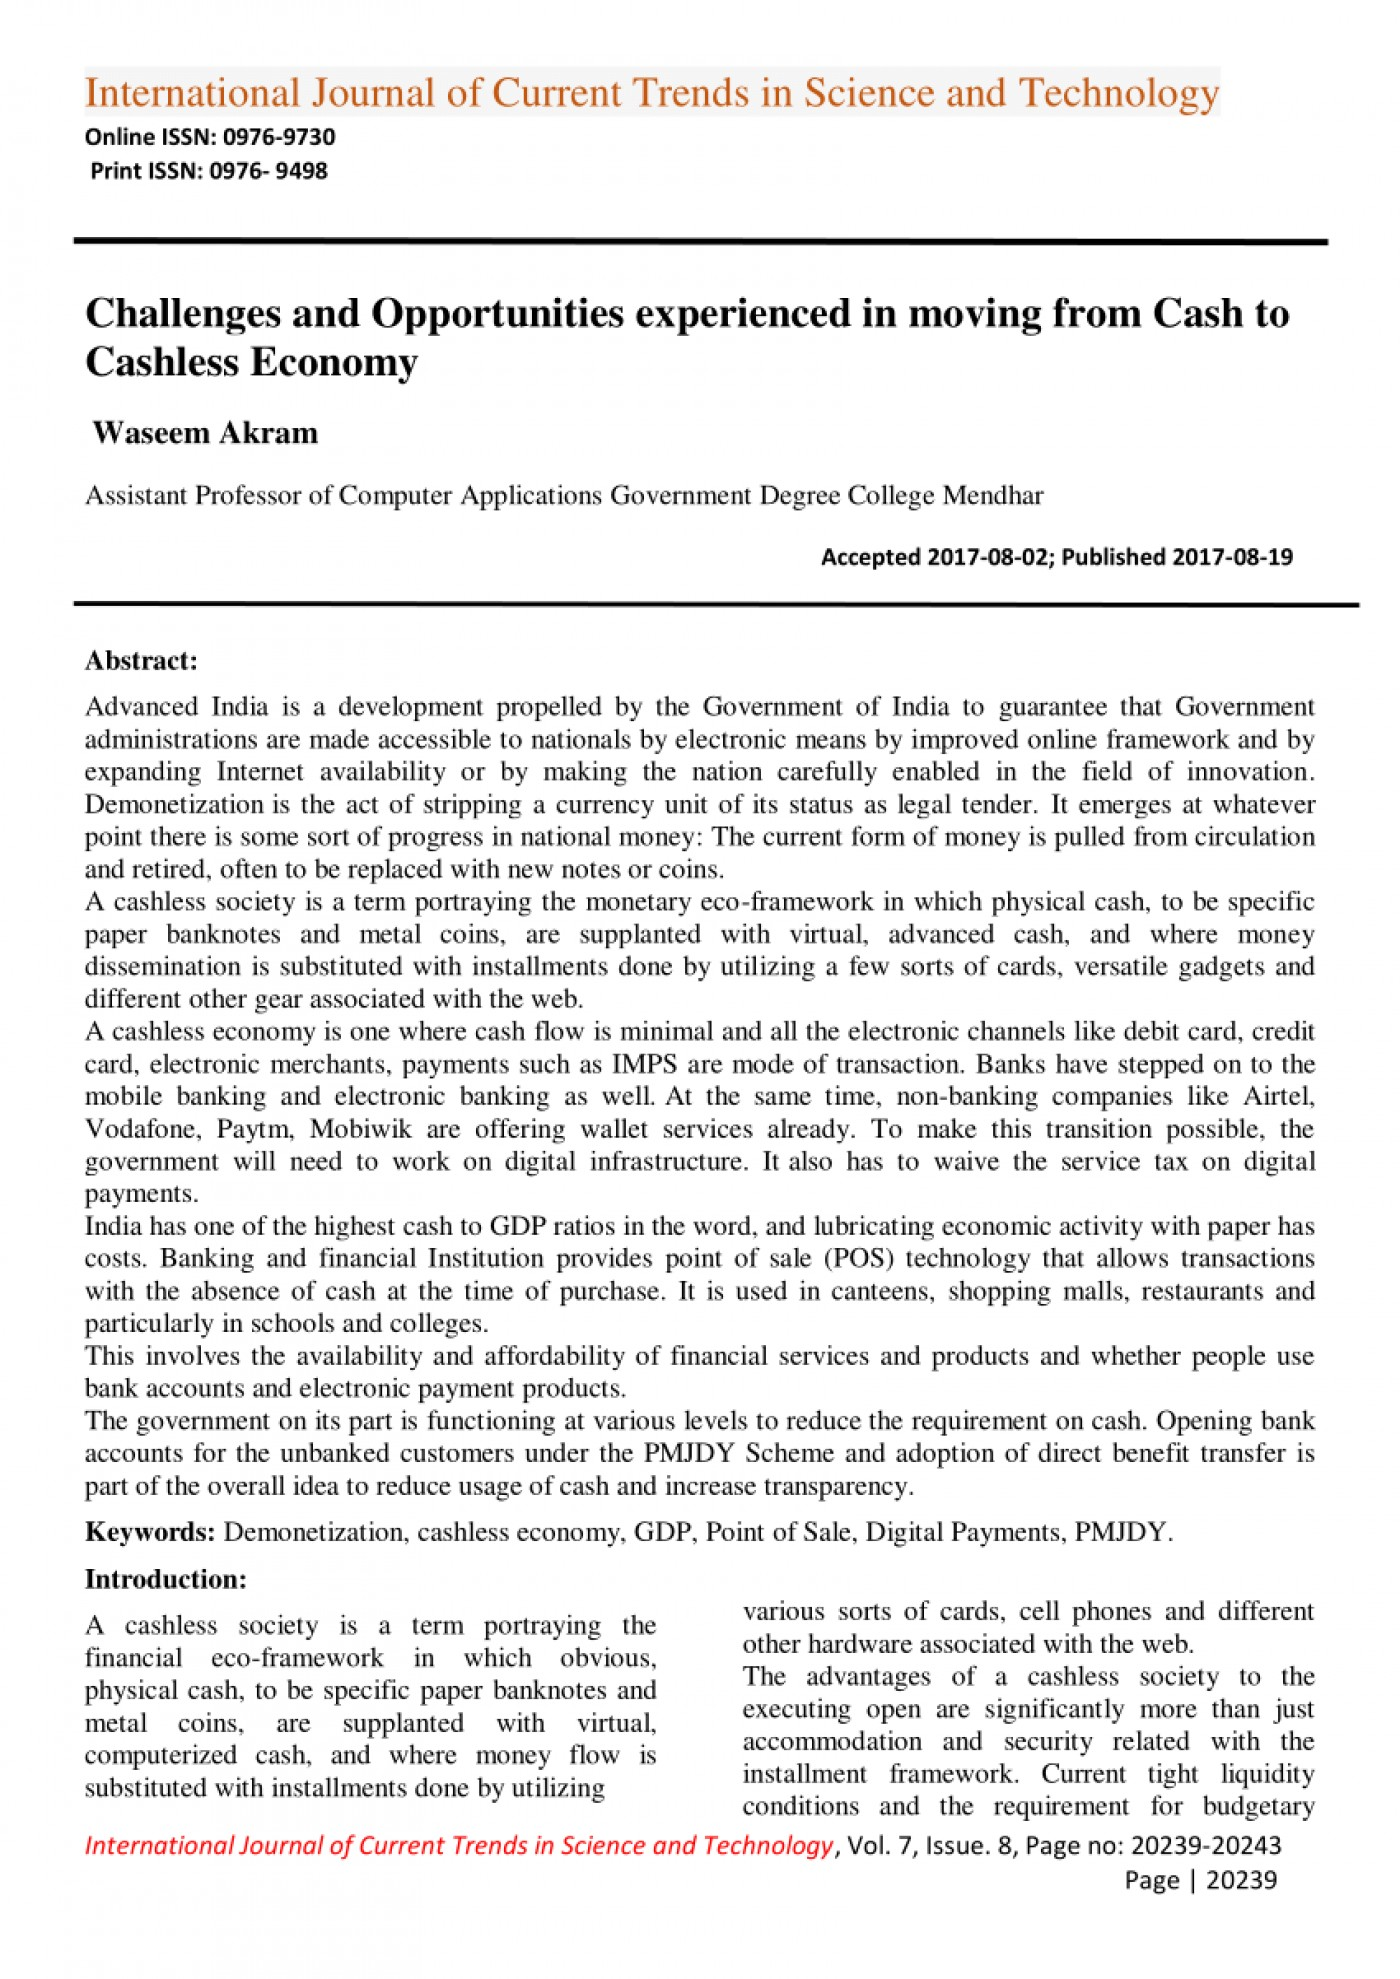 005 Largepreview Research Paper Cash To Cashless Rare Economy 1400